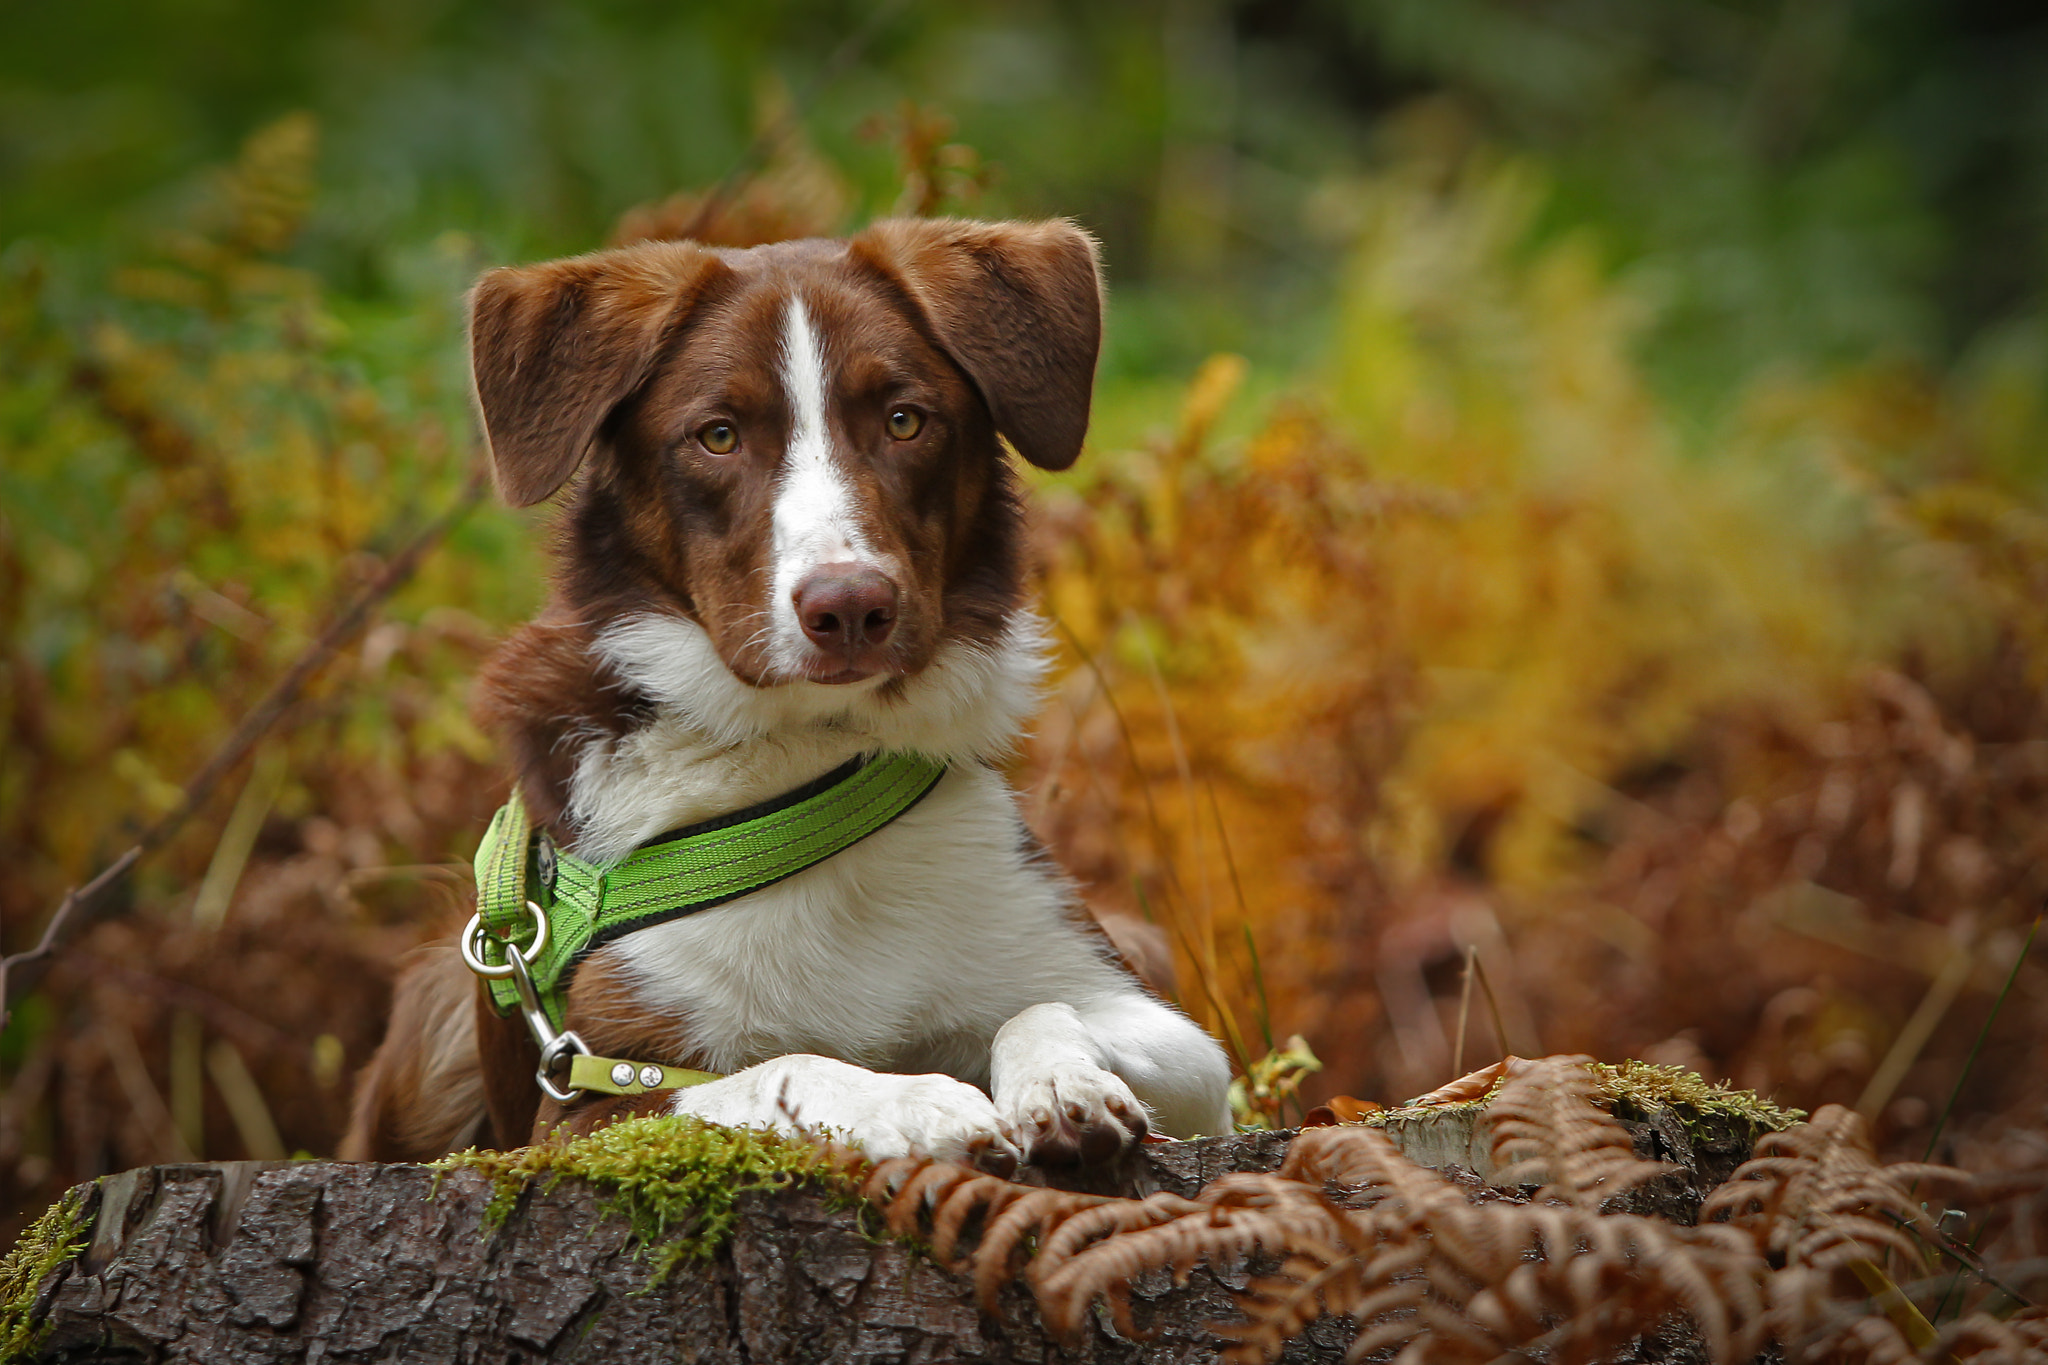 Photograph dog in the wood by Mathias Ahrens on 500px